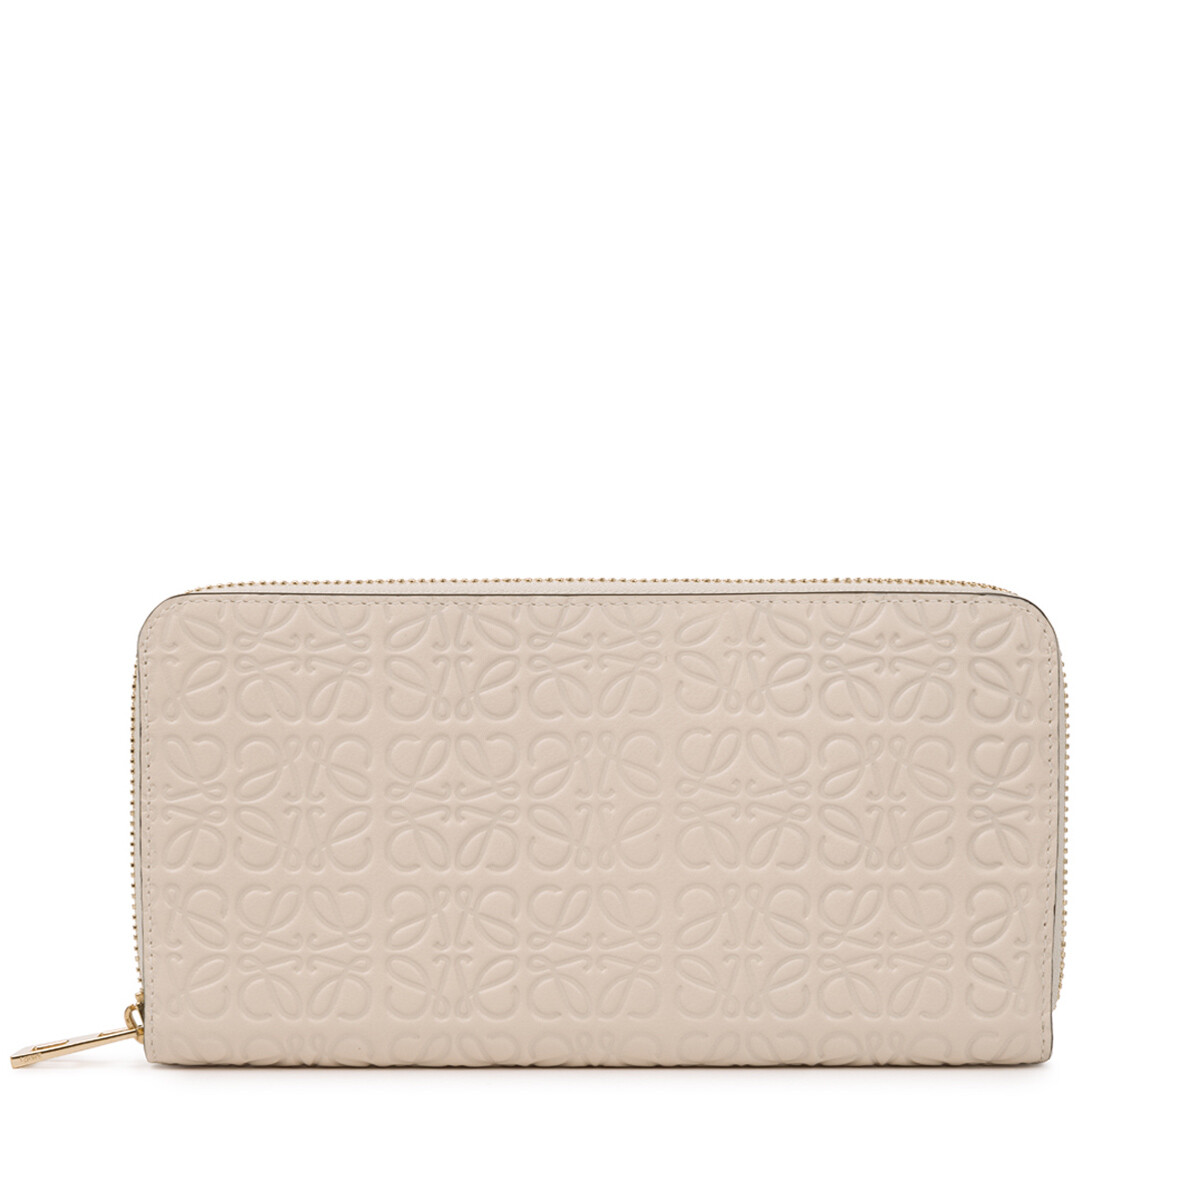 LOEWE Repeat Zip Around Wallet 乳白色 front